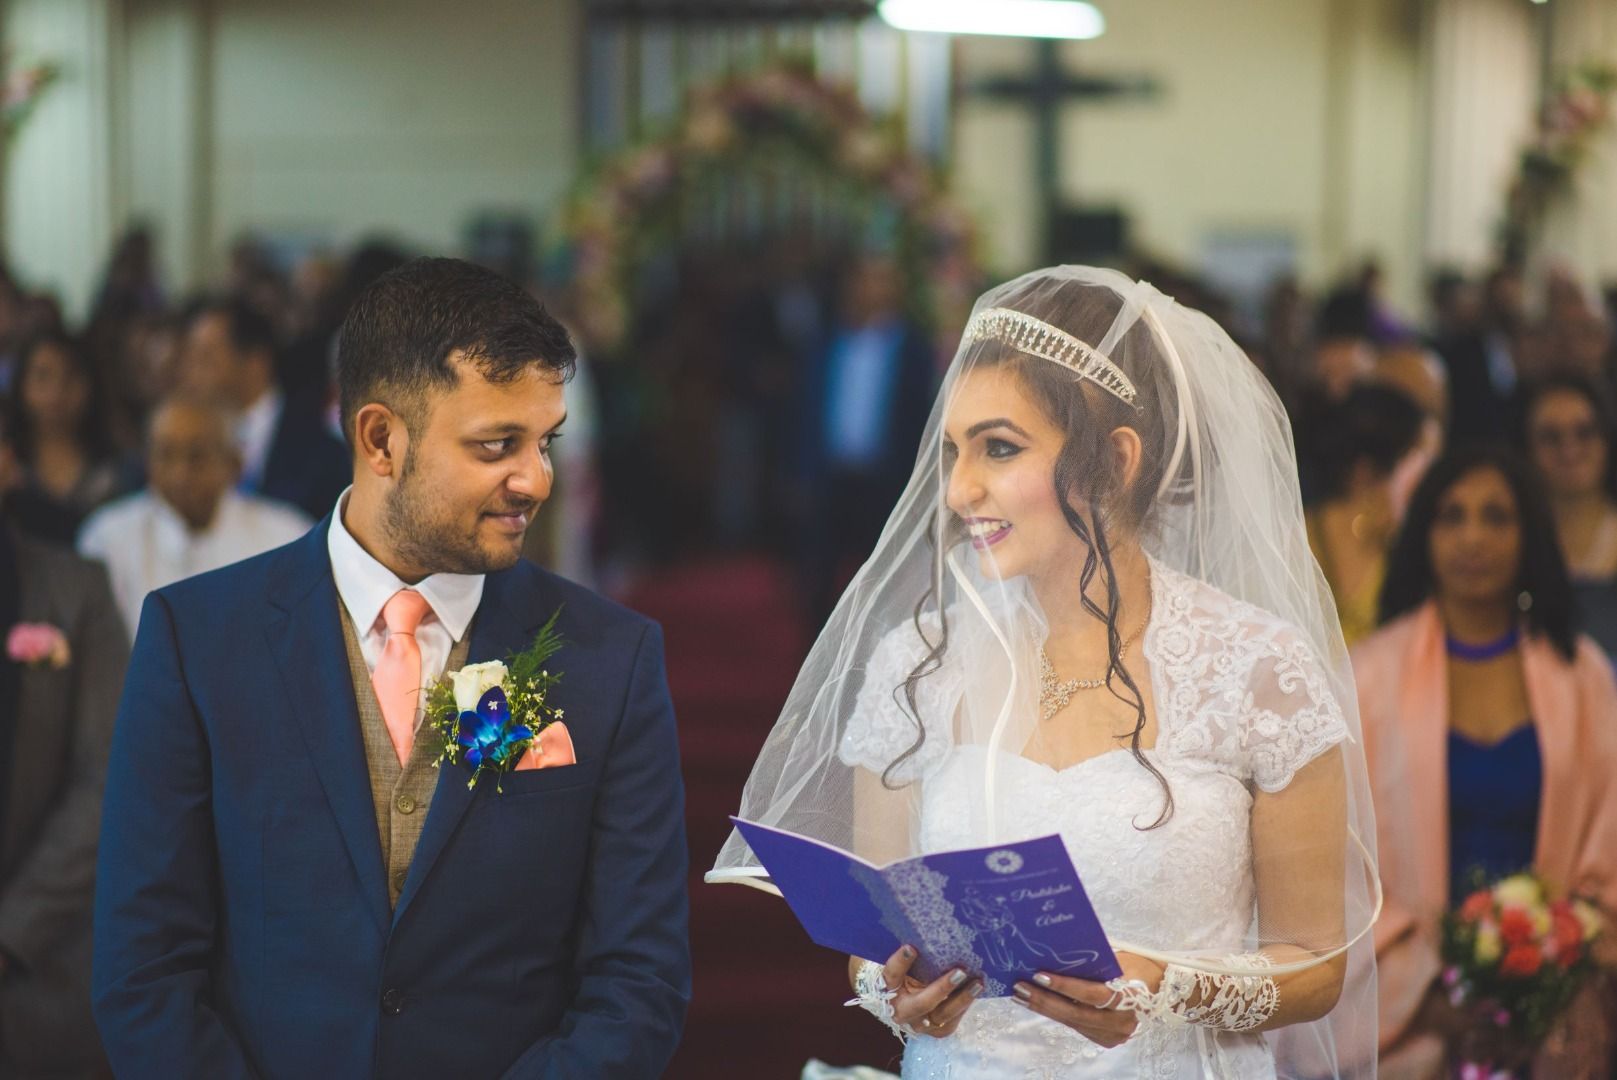 Christian bride in white and groom in blue suit